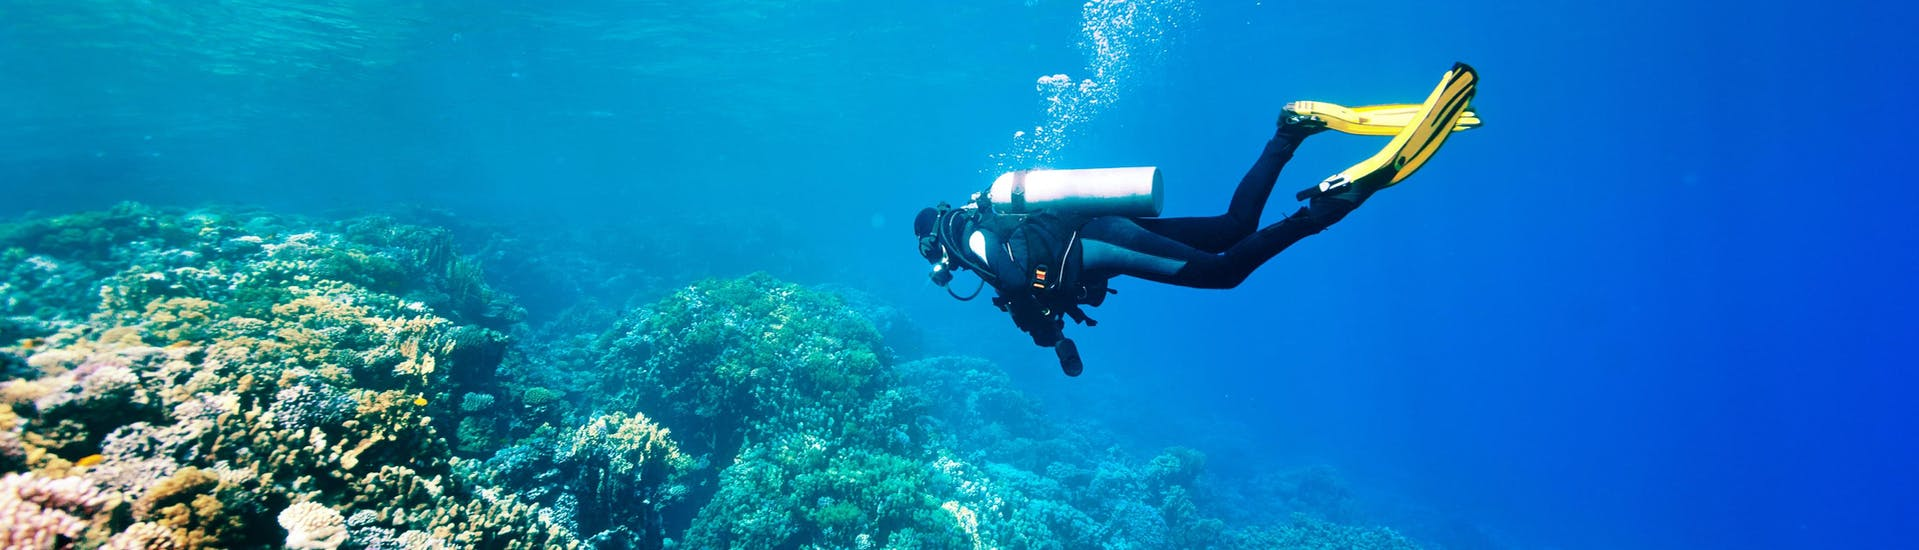 A scuba diver is exploring a reef while scuba diving in the scuba diving destination of Hyères.